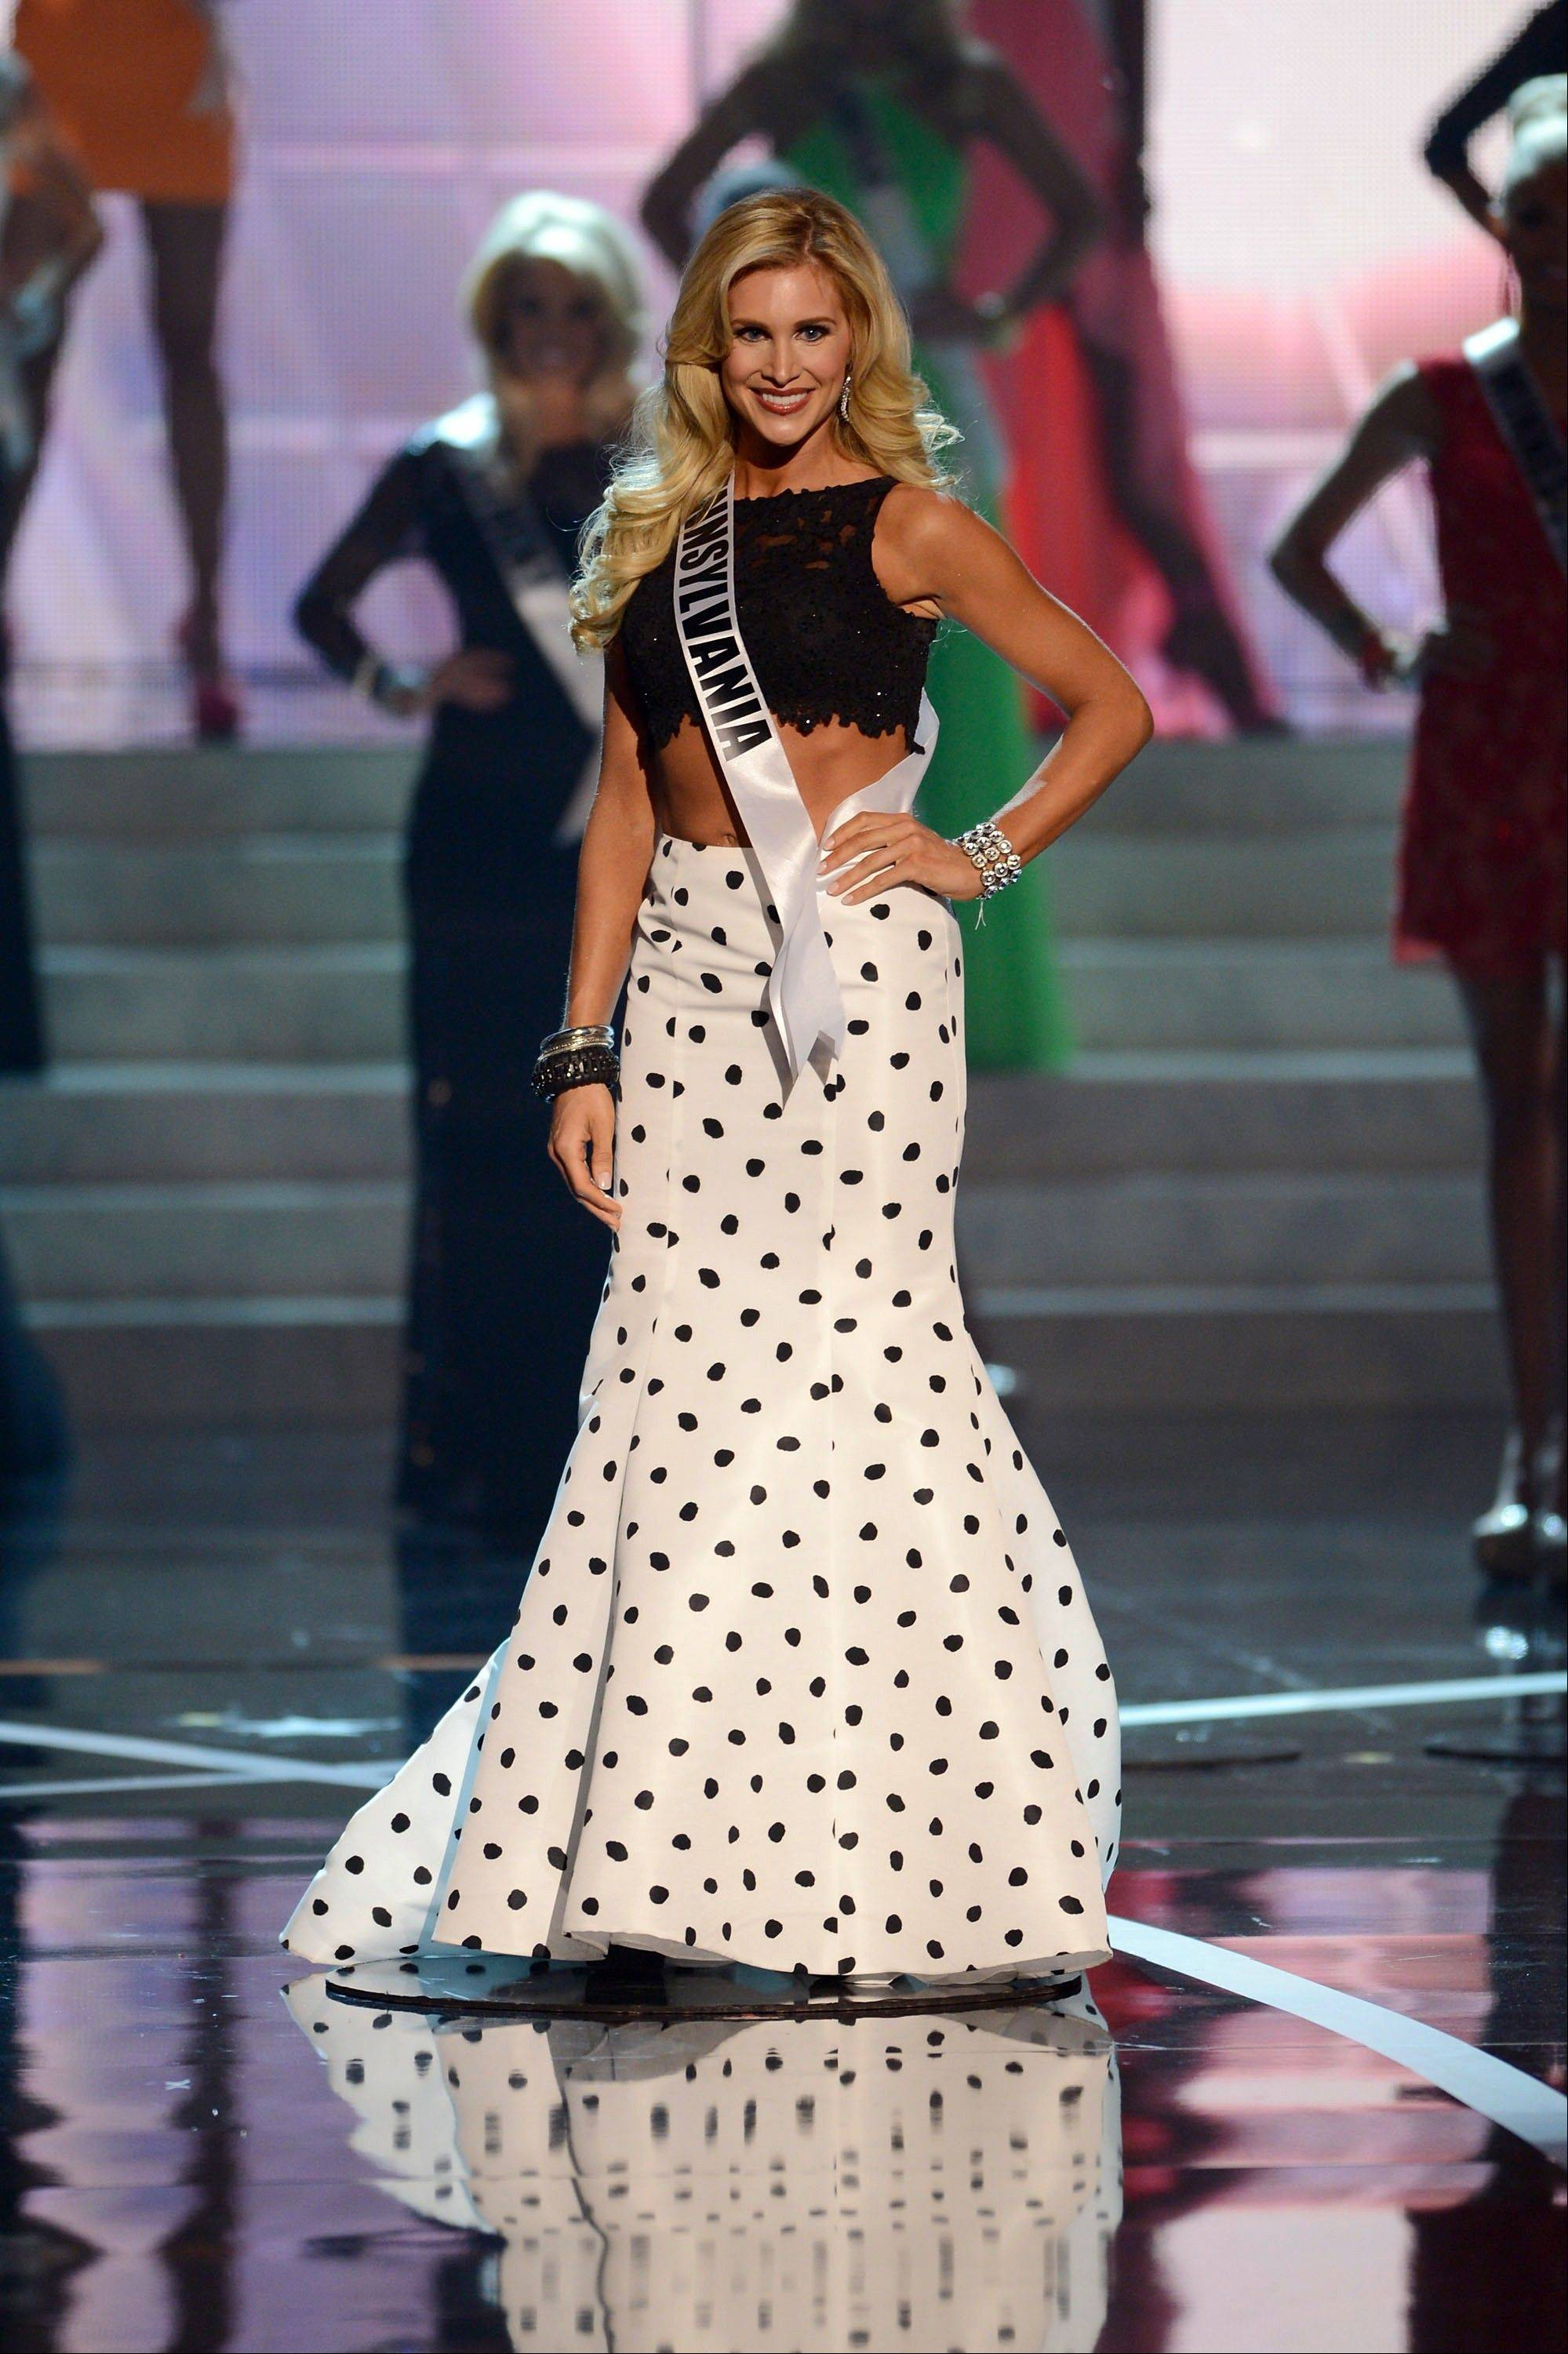 Miss Pennsylvania Jessica Billings from Berwyn walks the runway during the introductions of the Miss USA 2013 pageant, Sunday, June 16, 2013, in Las Vegas.